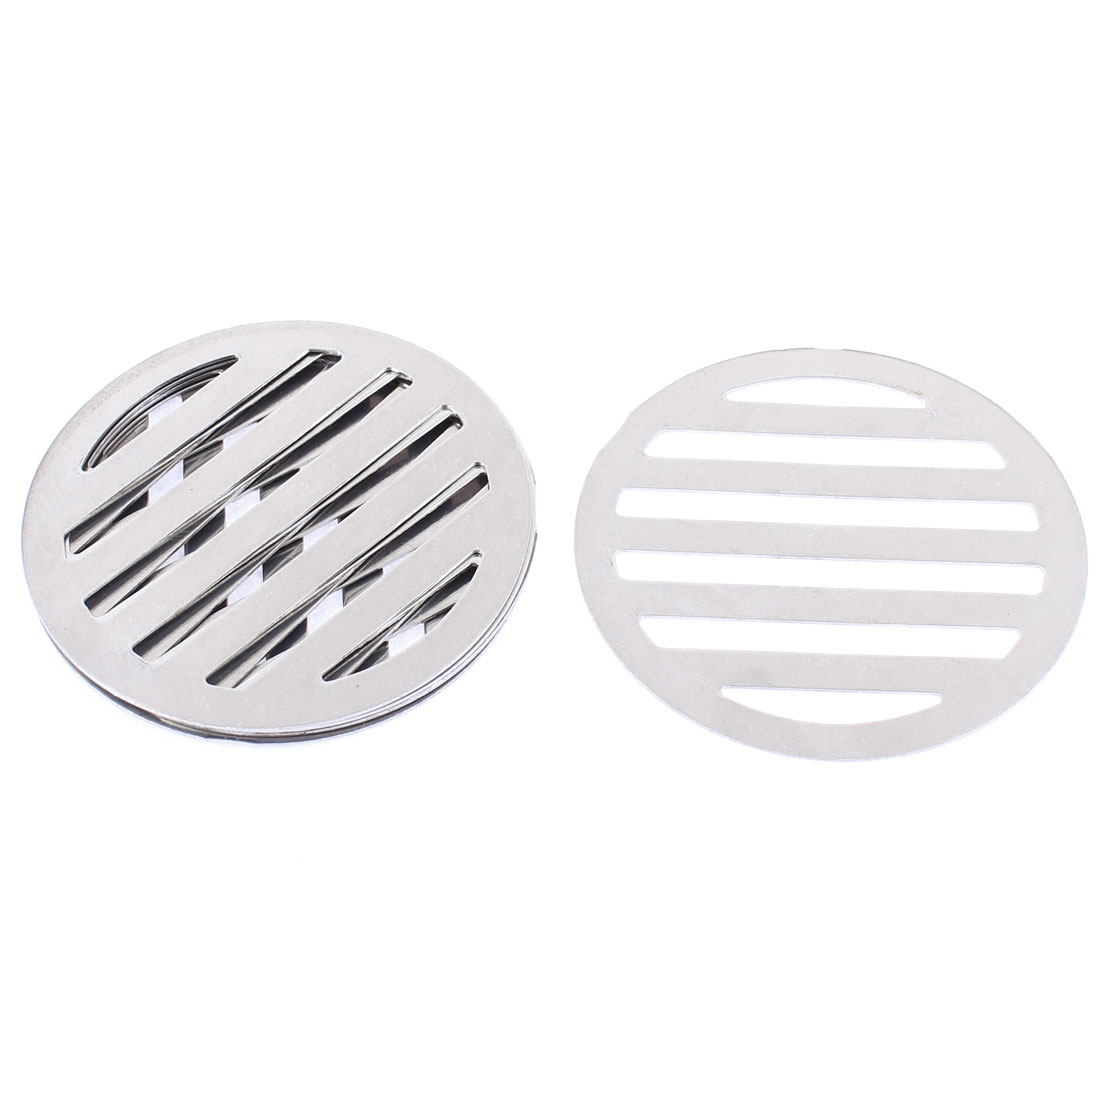 "Kitchen Bathroom Round Floor Drain Drainer Cover 3.4"" 8.6cm Dia 6Pcs"